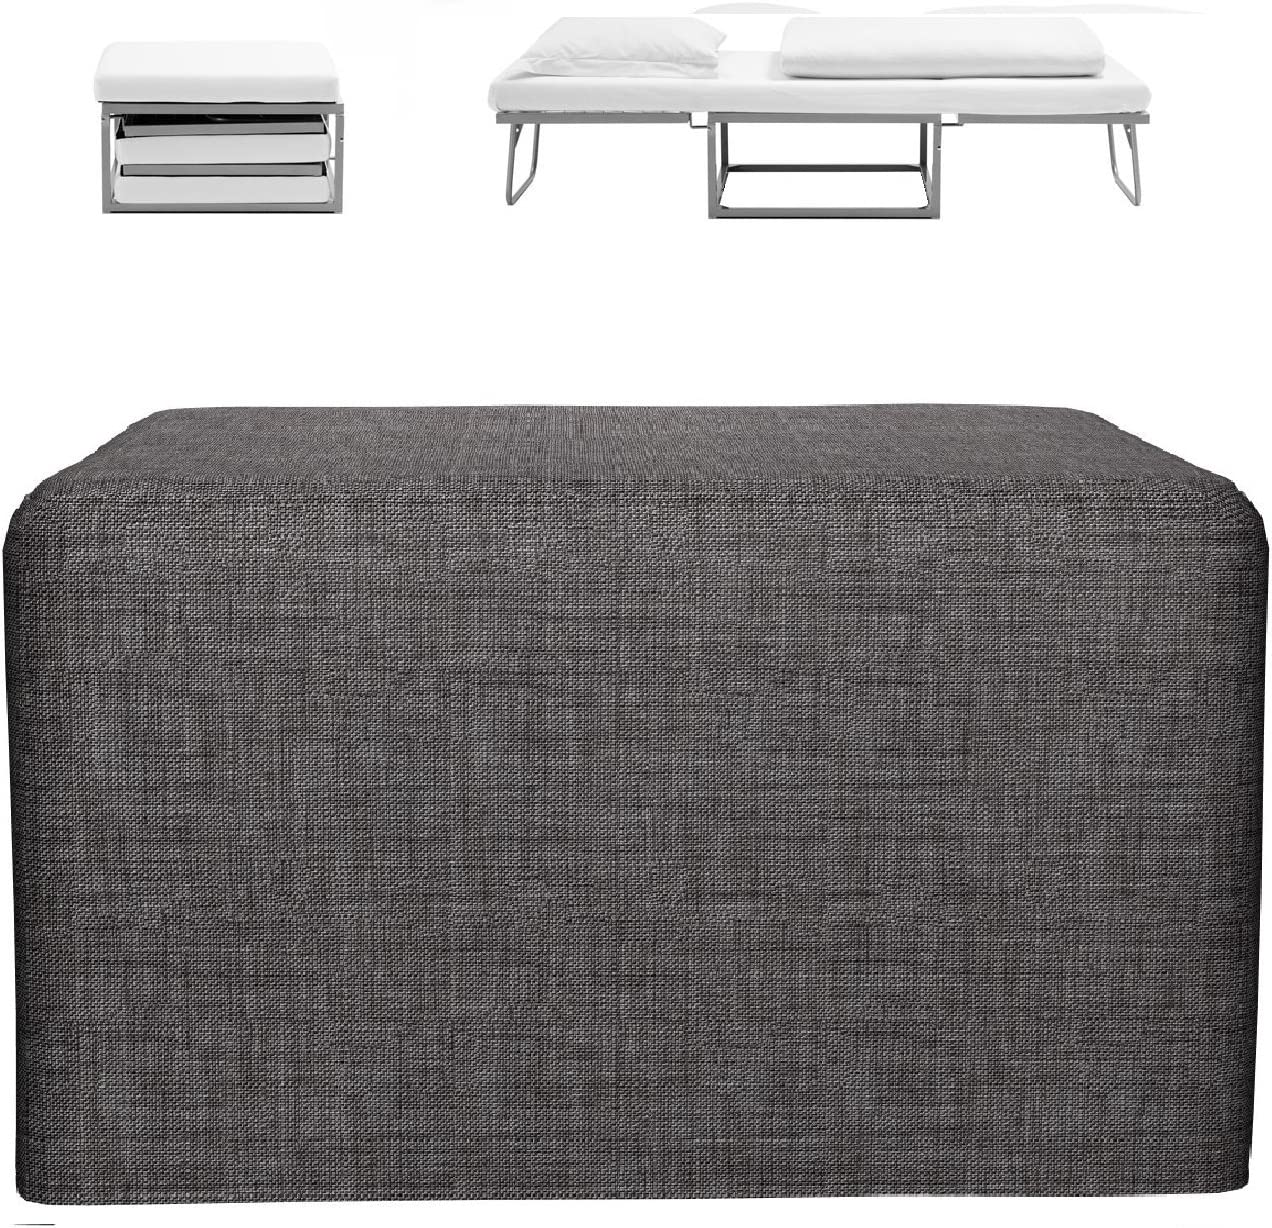 - BED IN A CUBE - 3 In 1 - COMPACT FOLDING SINGLE SOFA GUEST BED, FOOTSTOOL &  SEAT (Grey): Amazon.co.uk: Kitchen & Home